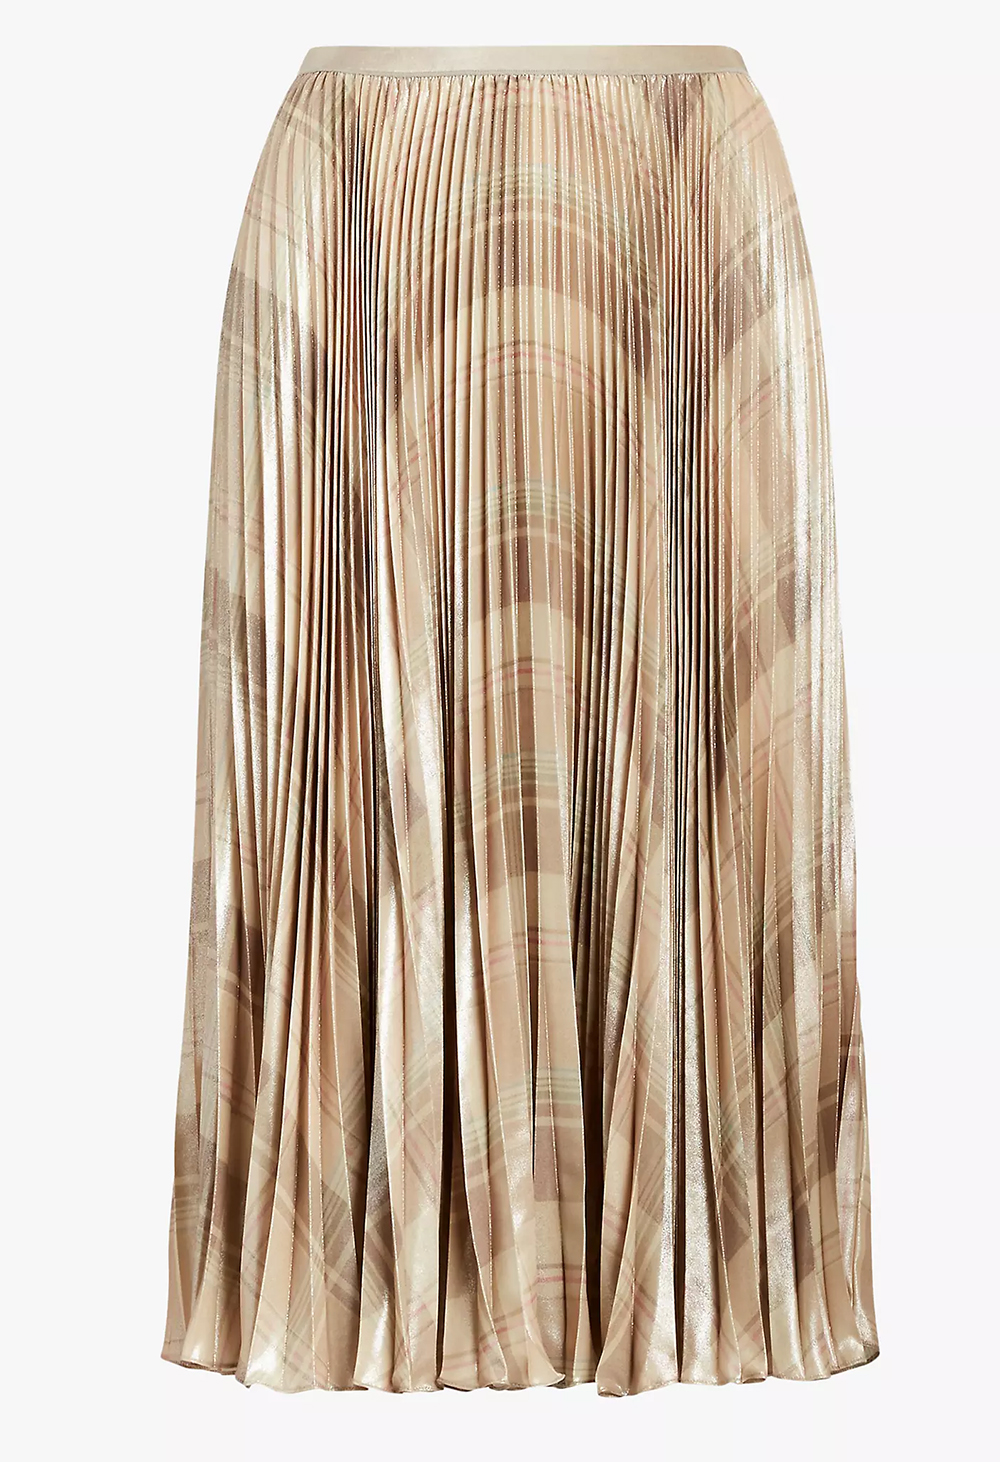 Pleated Skirt for Autumn Wedding 2021. Champagne Gold Skirt for Mother of the Bride 2021. Champagne Gold fashion ideas 2021. Metallic Pleated Skirt 2021. What to wear for an Autumn wedding 2021. Autumn Wedding Outfits 2021. What to wear to an Autumn wedding UK. Autumn Mother of the Bride Dress 2021.